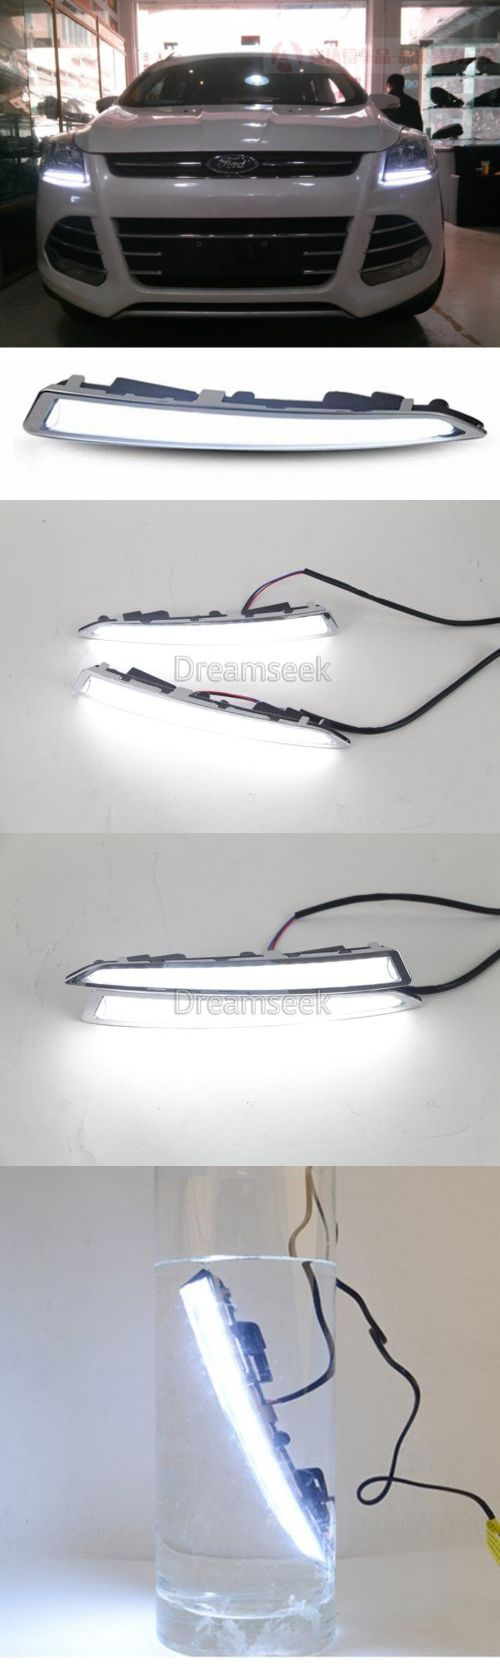 Motors parts and accessories drl for ford kuga escape 2013 2014 2015 2016 led daytime